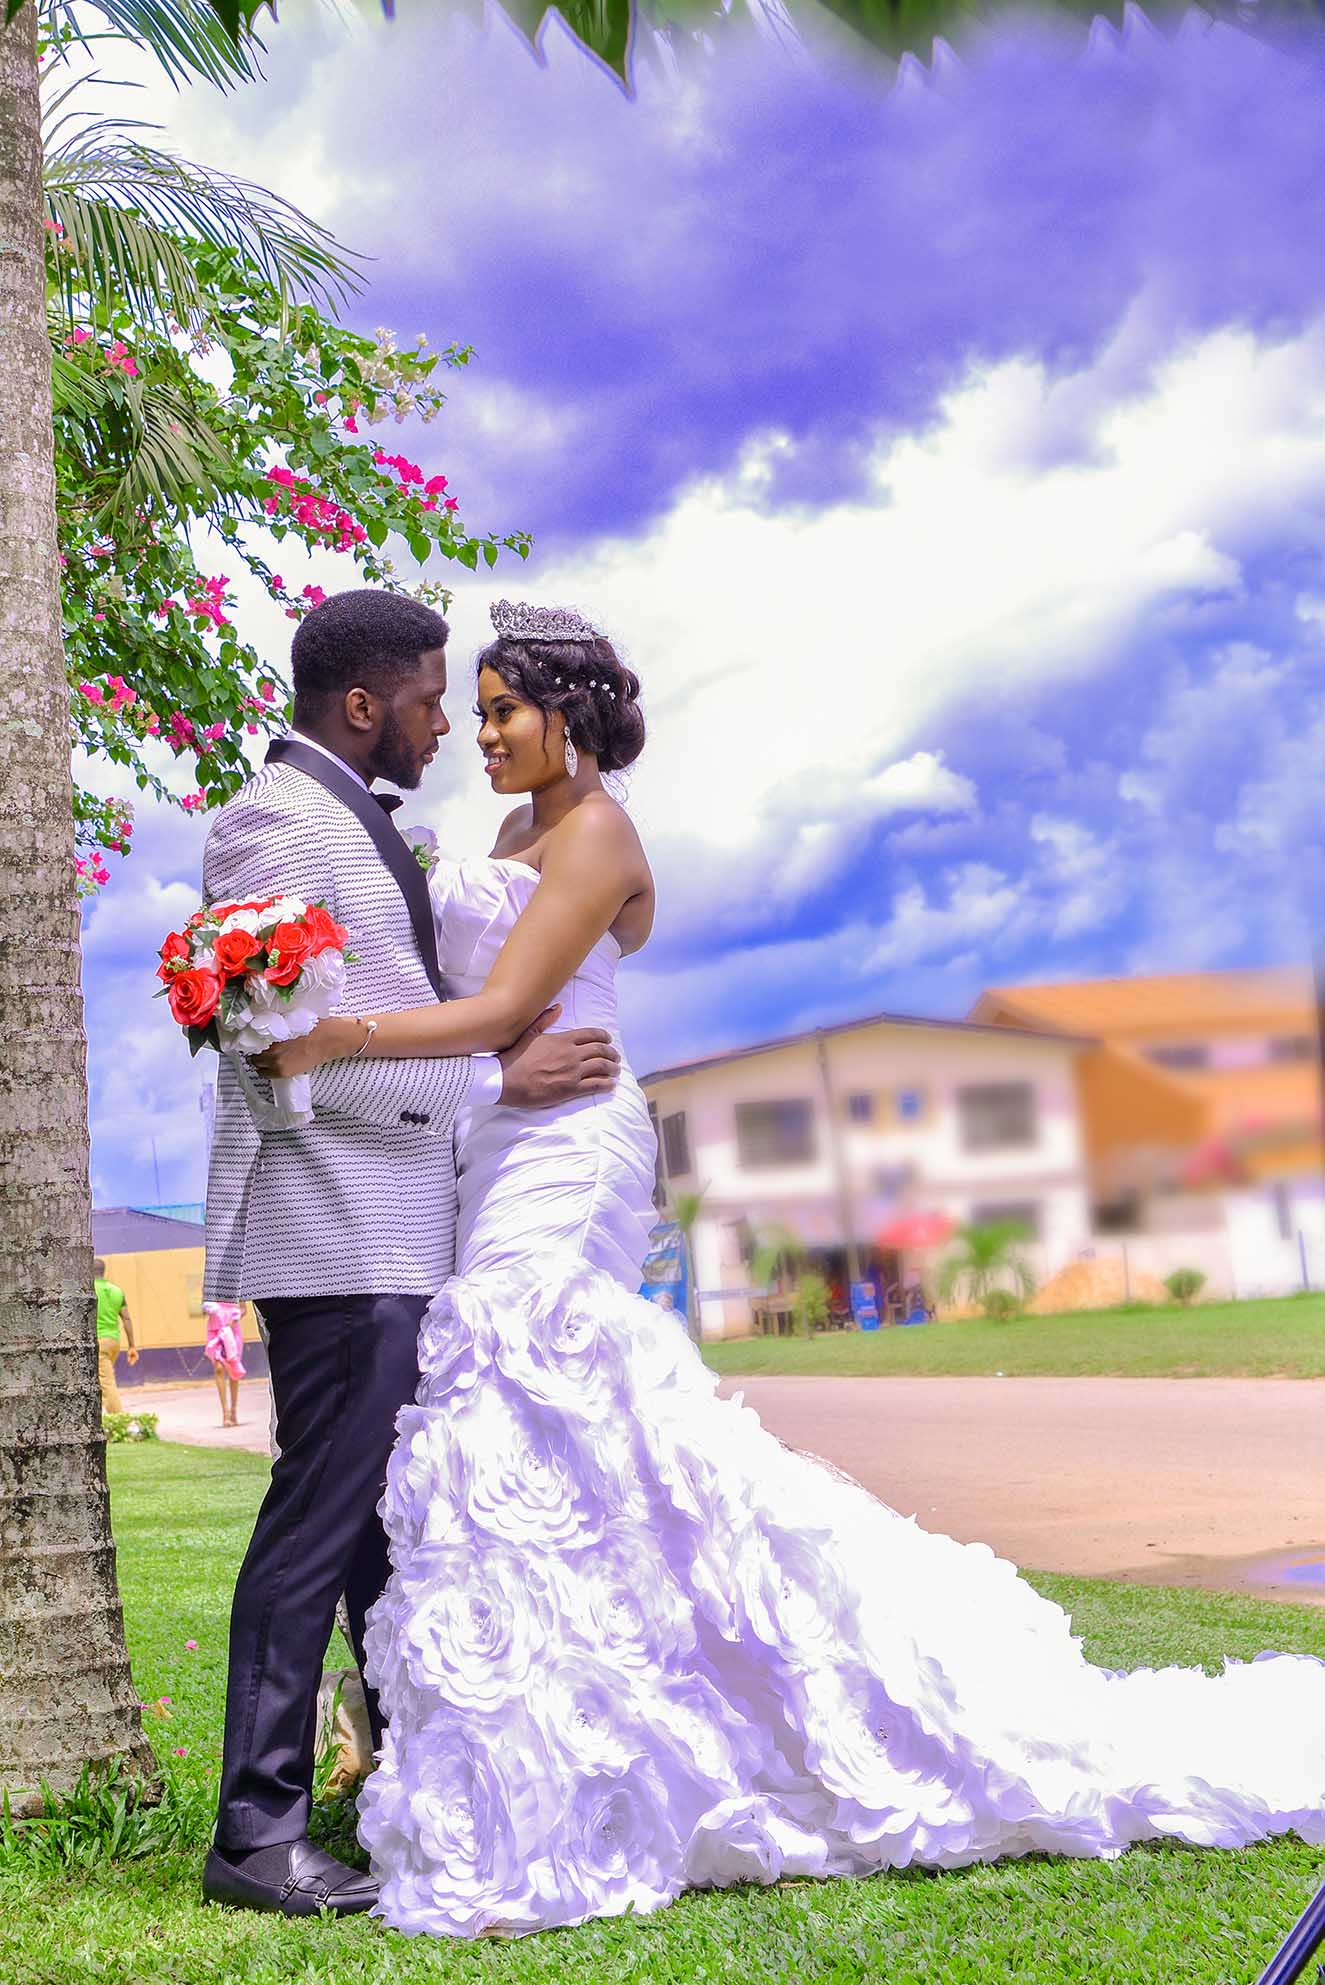 WHITE WEDDING wedding photos|Koporate Images|Photography & Video Coverage studio in Benin City|Professional Photographers for your events|Nigerian Wedding Photographer in Benin City|Edo Brides, benin brides